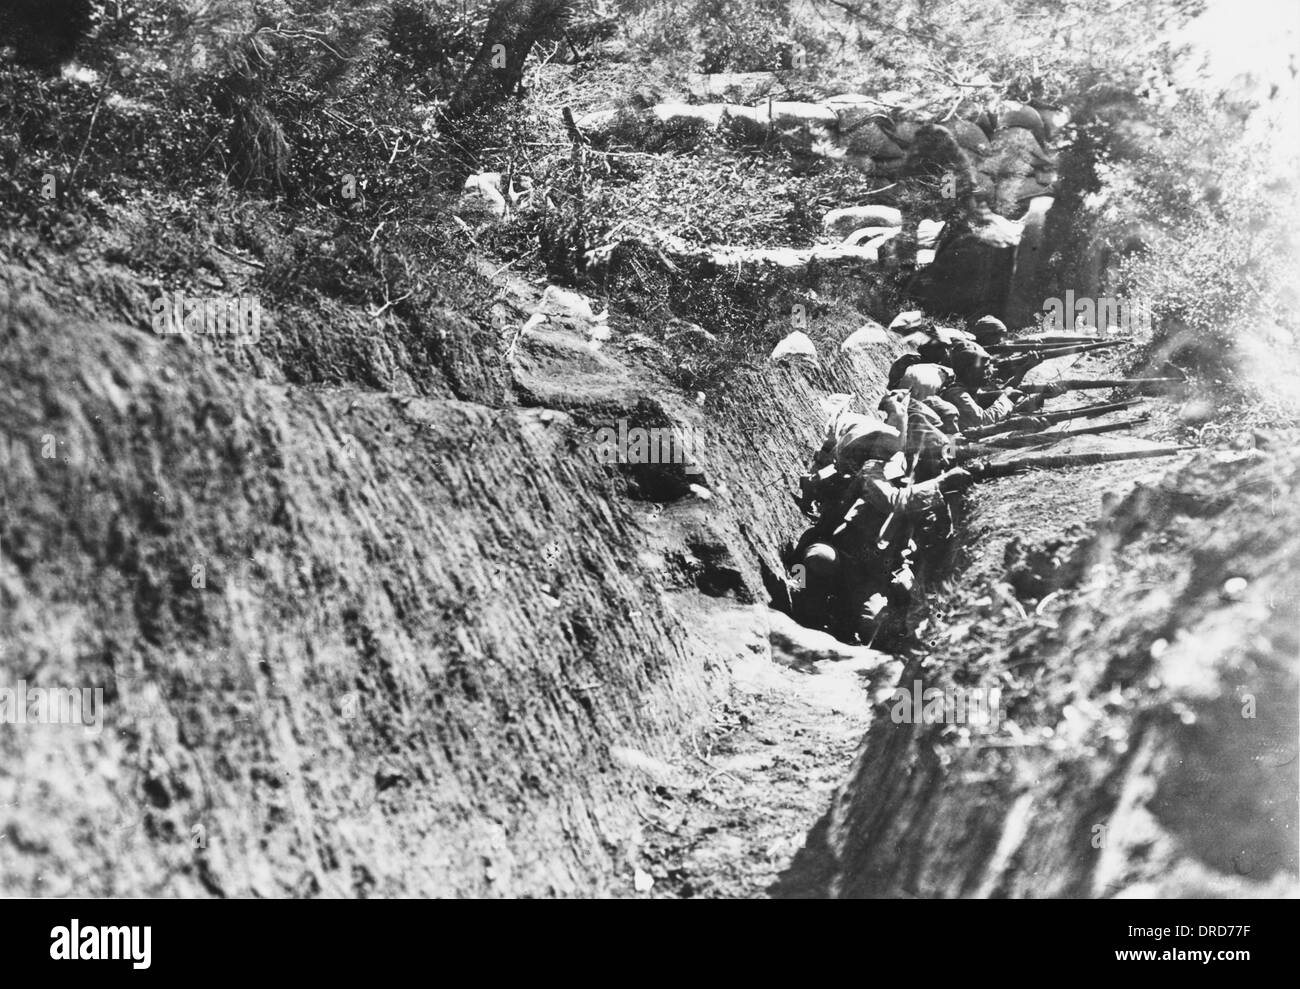 Turkish Trenches WWI - Stock Image